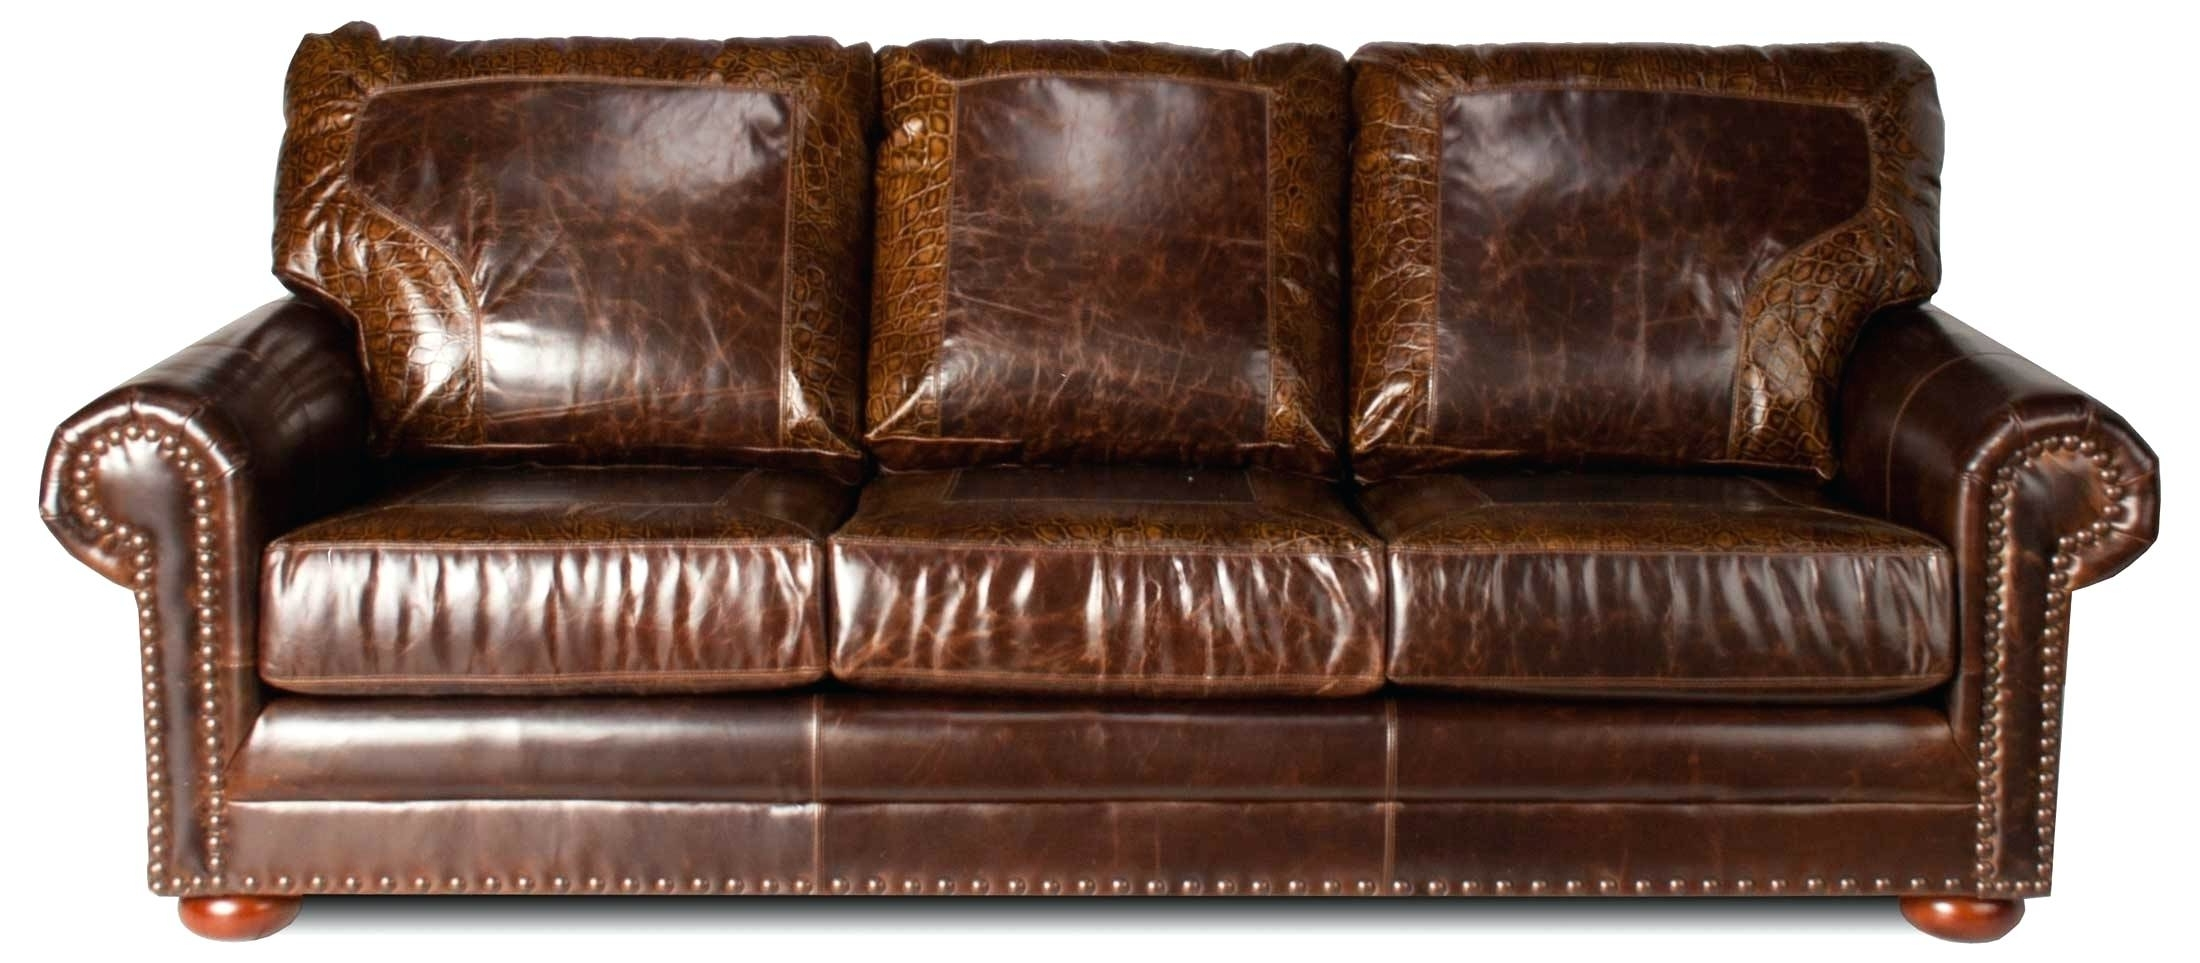 Custom Leather Sofas Toronto Sofa North Carolina Sectional San Throughout Most Up To Date Made In North Carolina Sectional Sofas (View 5 of 20)